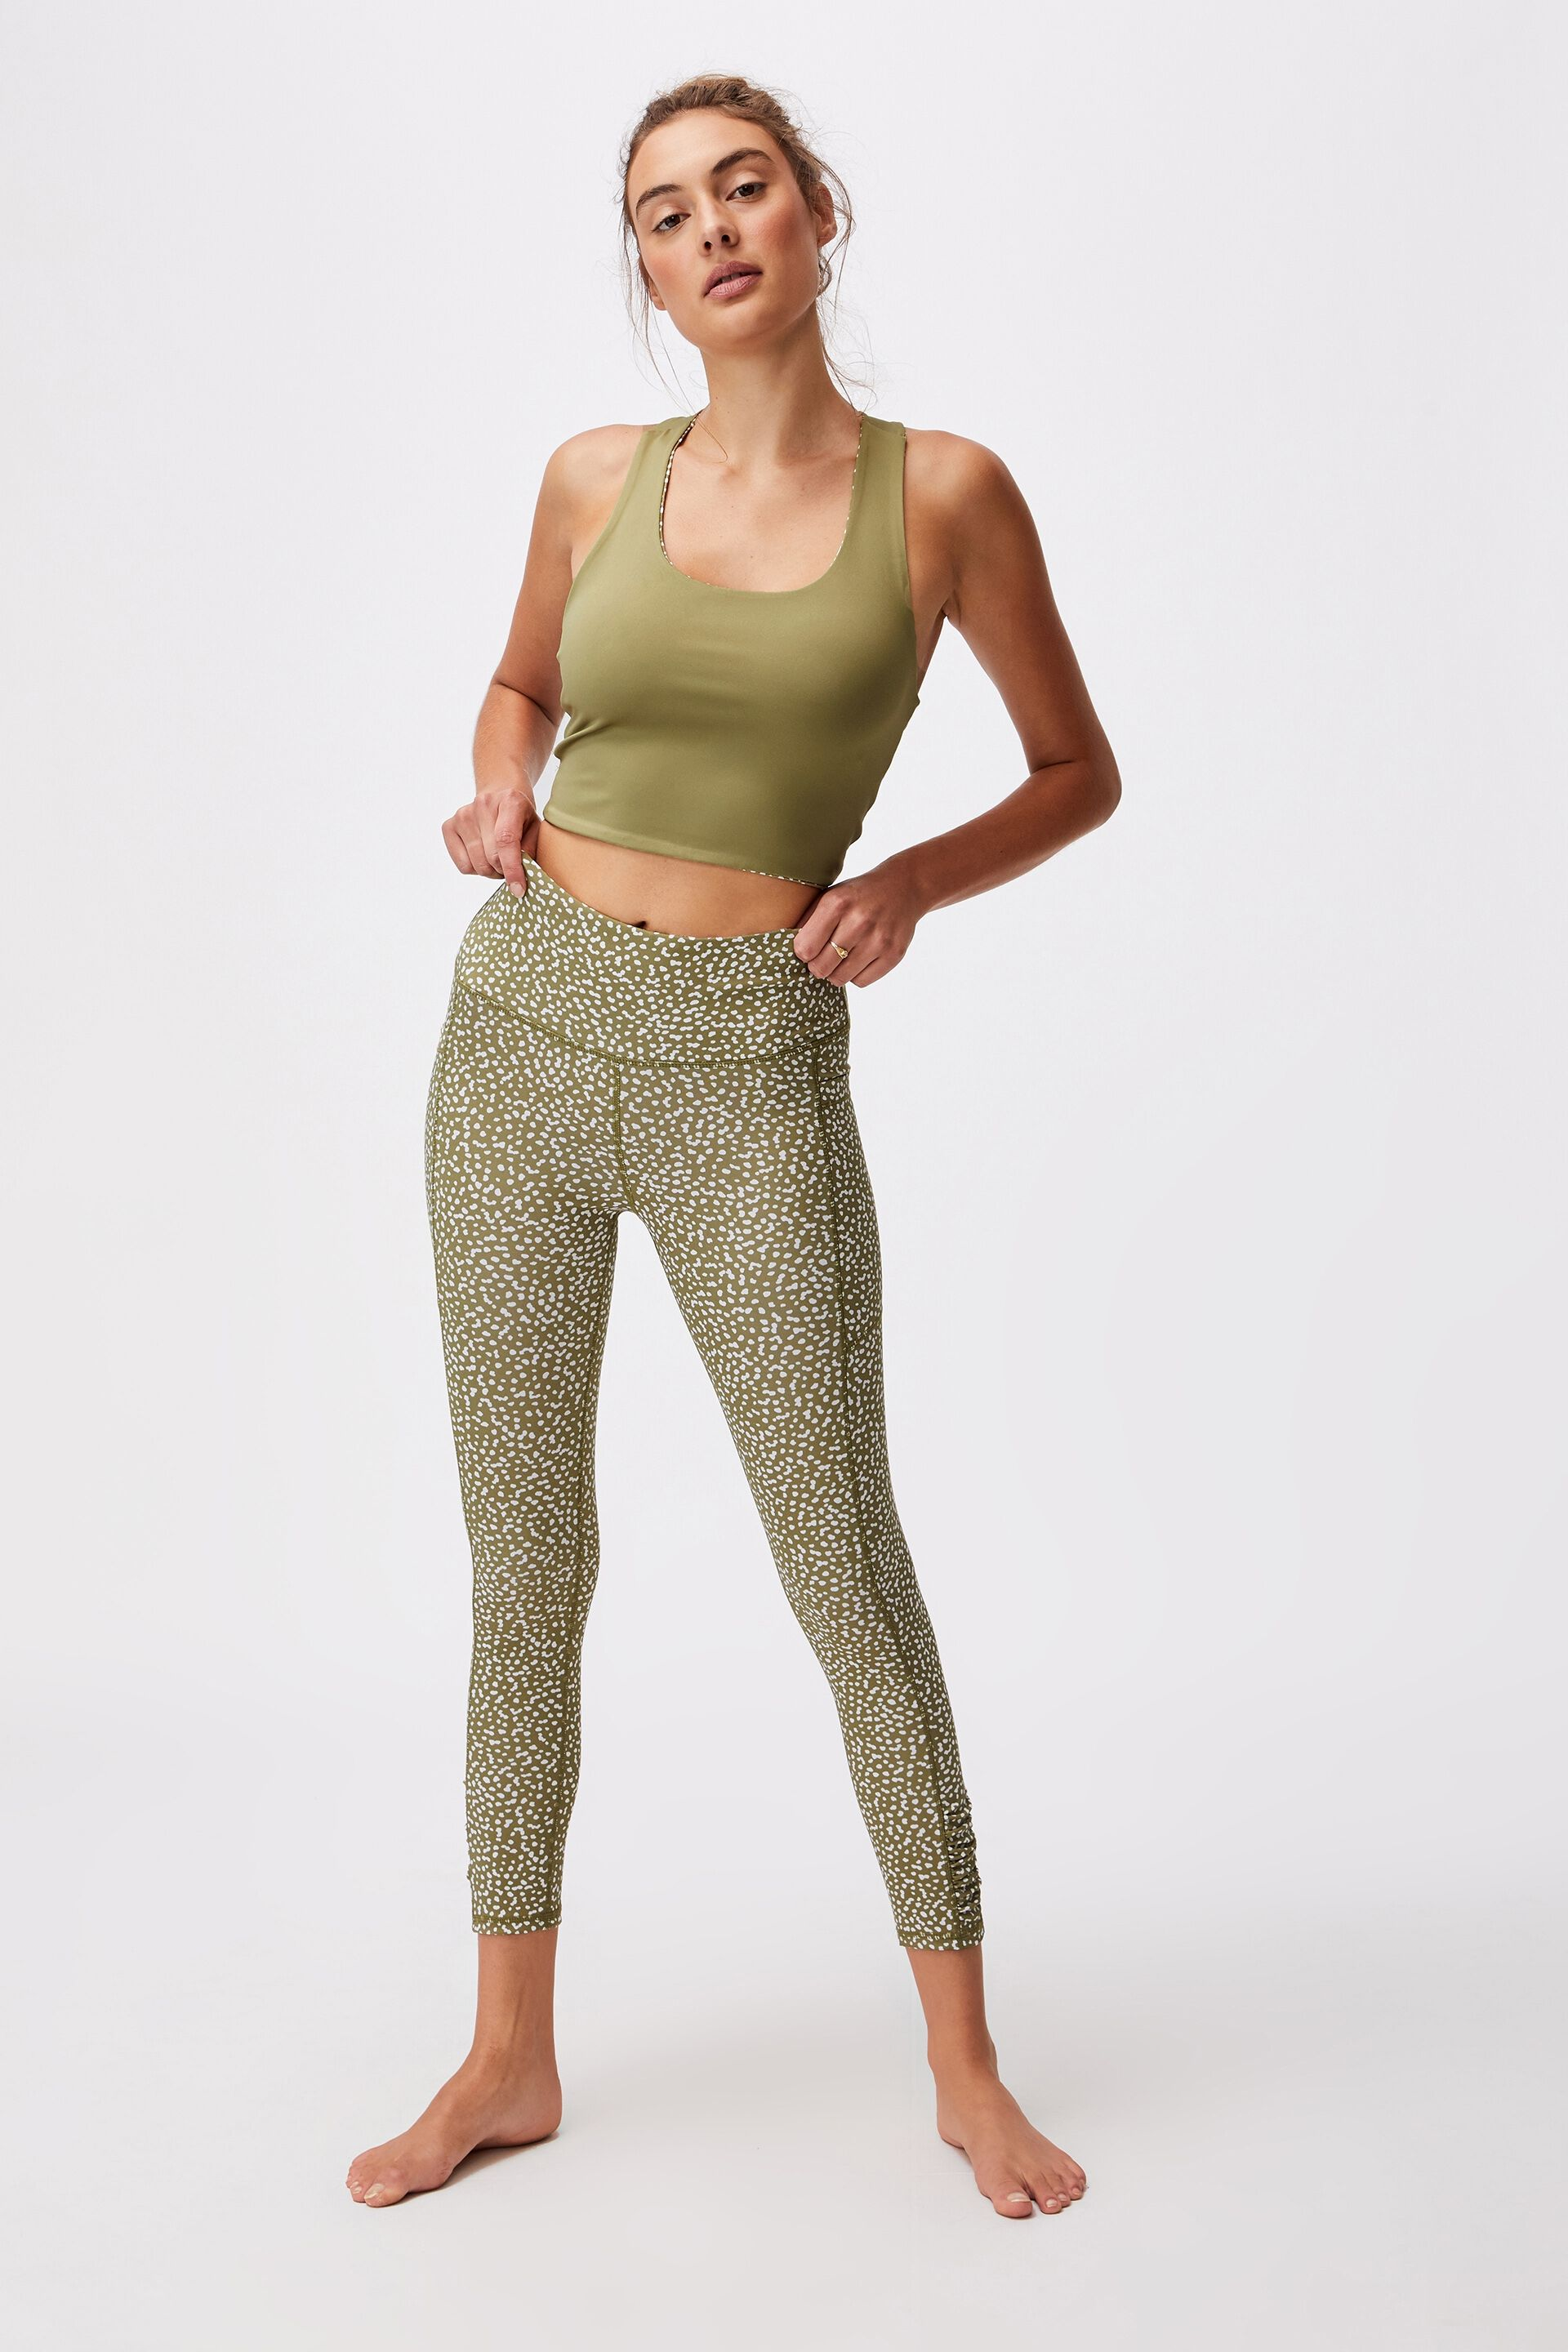 Love You A Latte 7/8 Active Tight   Cotton On